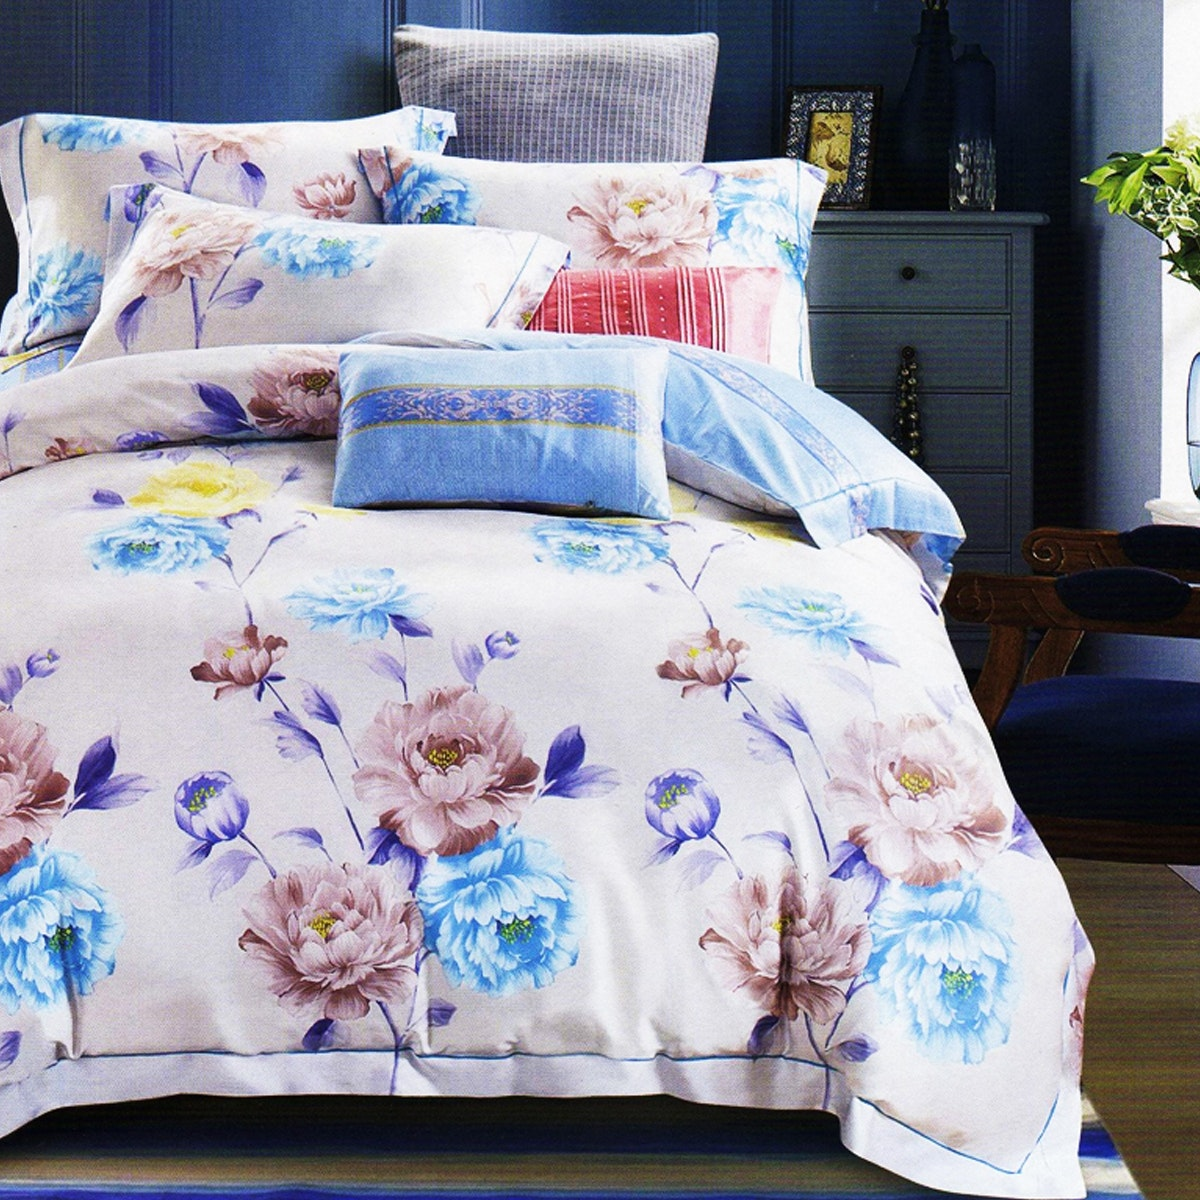 Sleep Buddy Set Sprei dan Bed Cover Blue Floral Line Cotton sateen 180x200x30